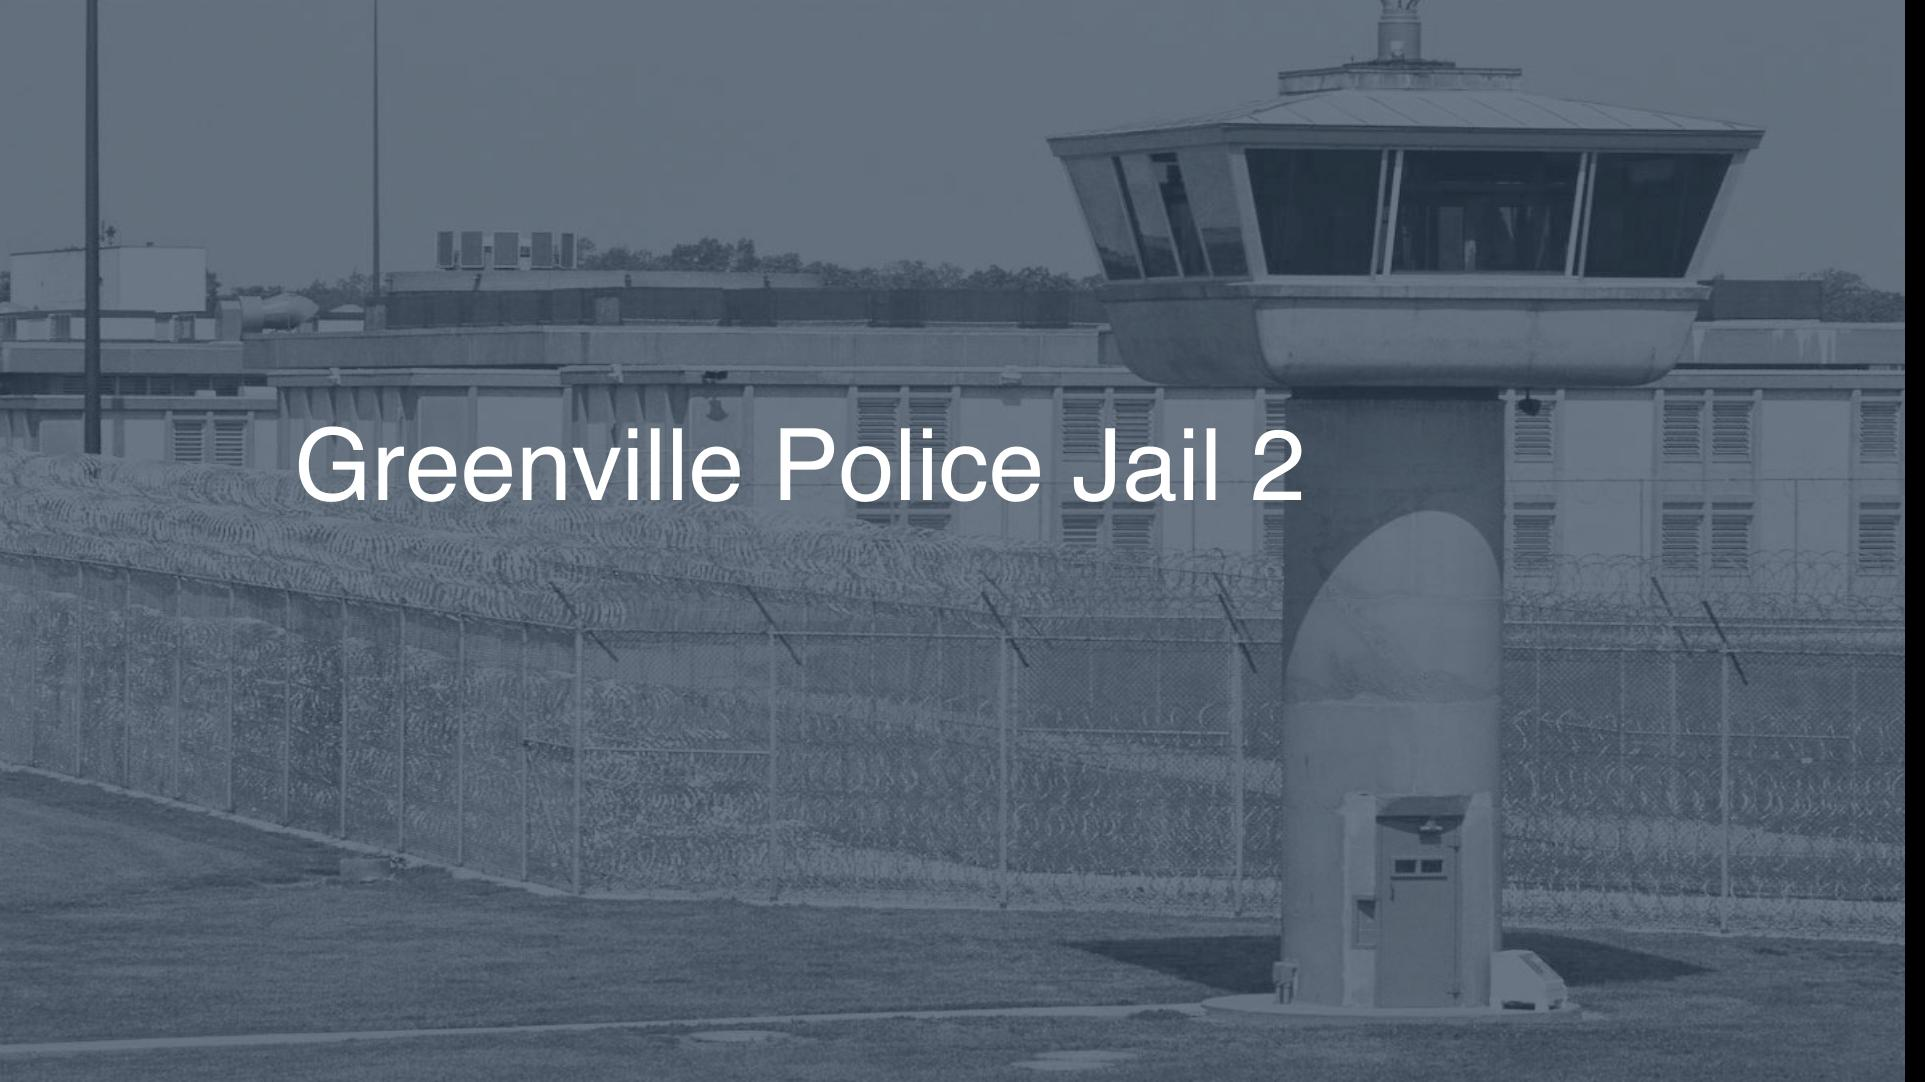 Greenville Police Jail correctional facility picture